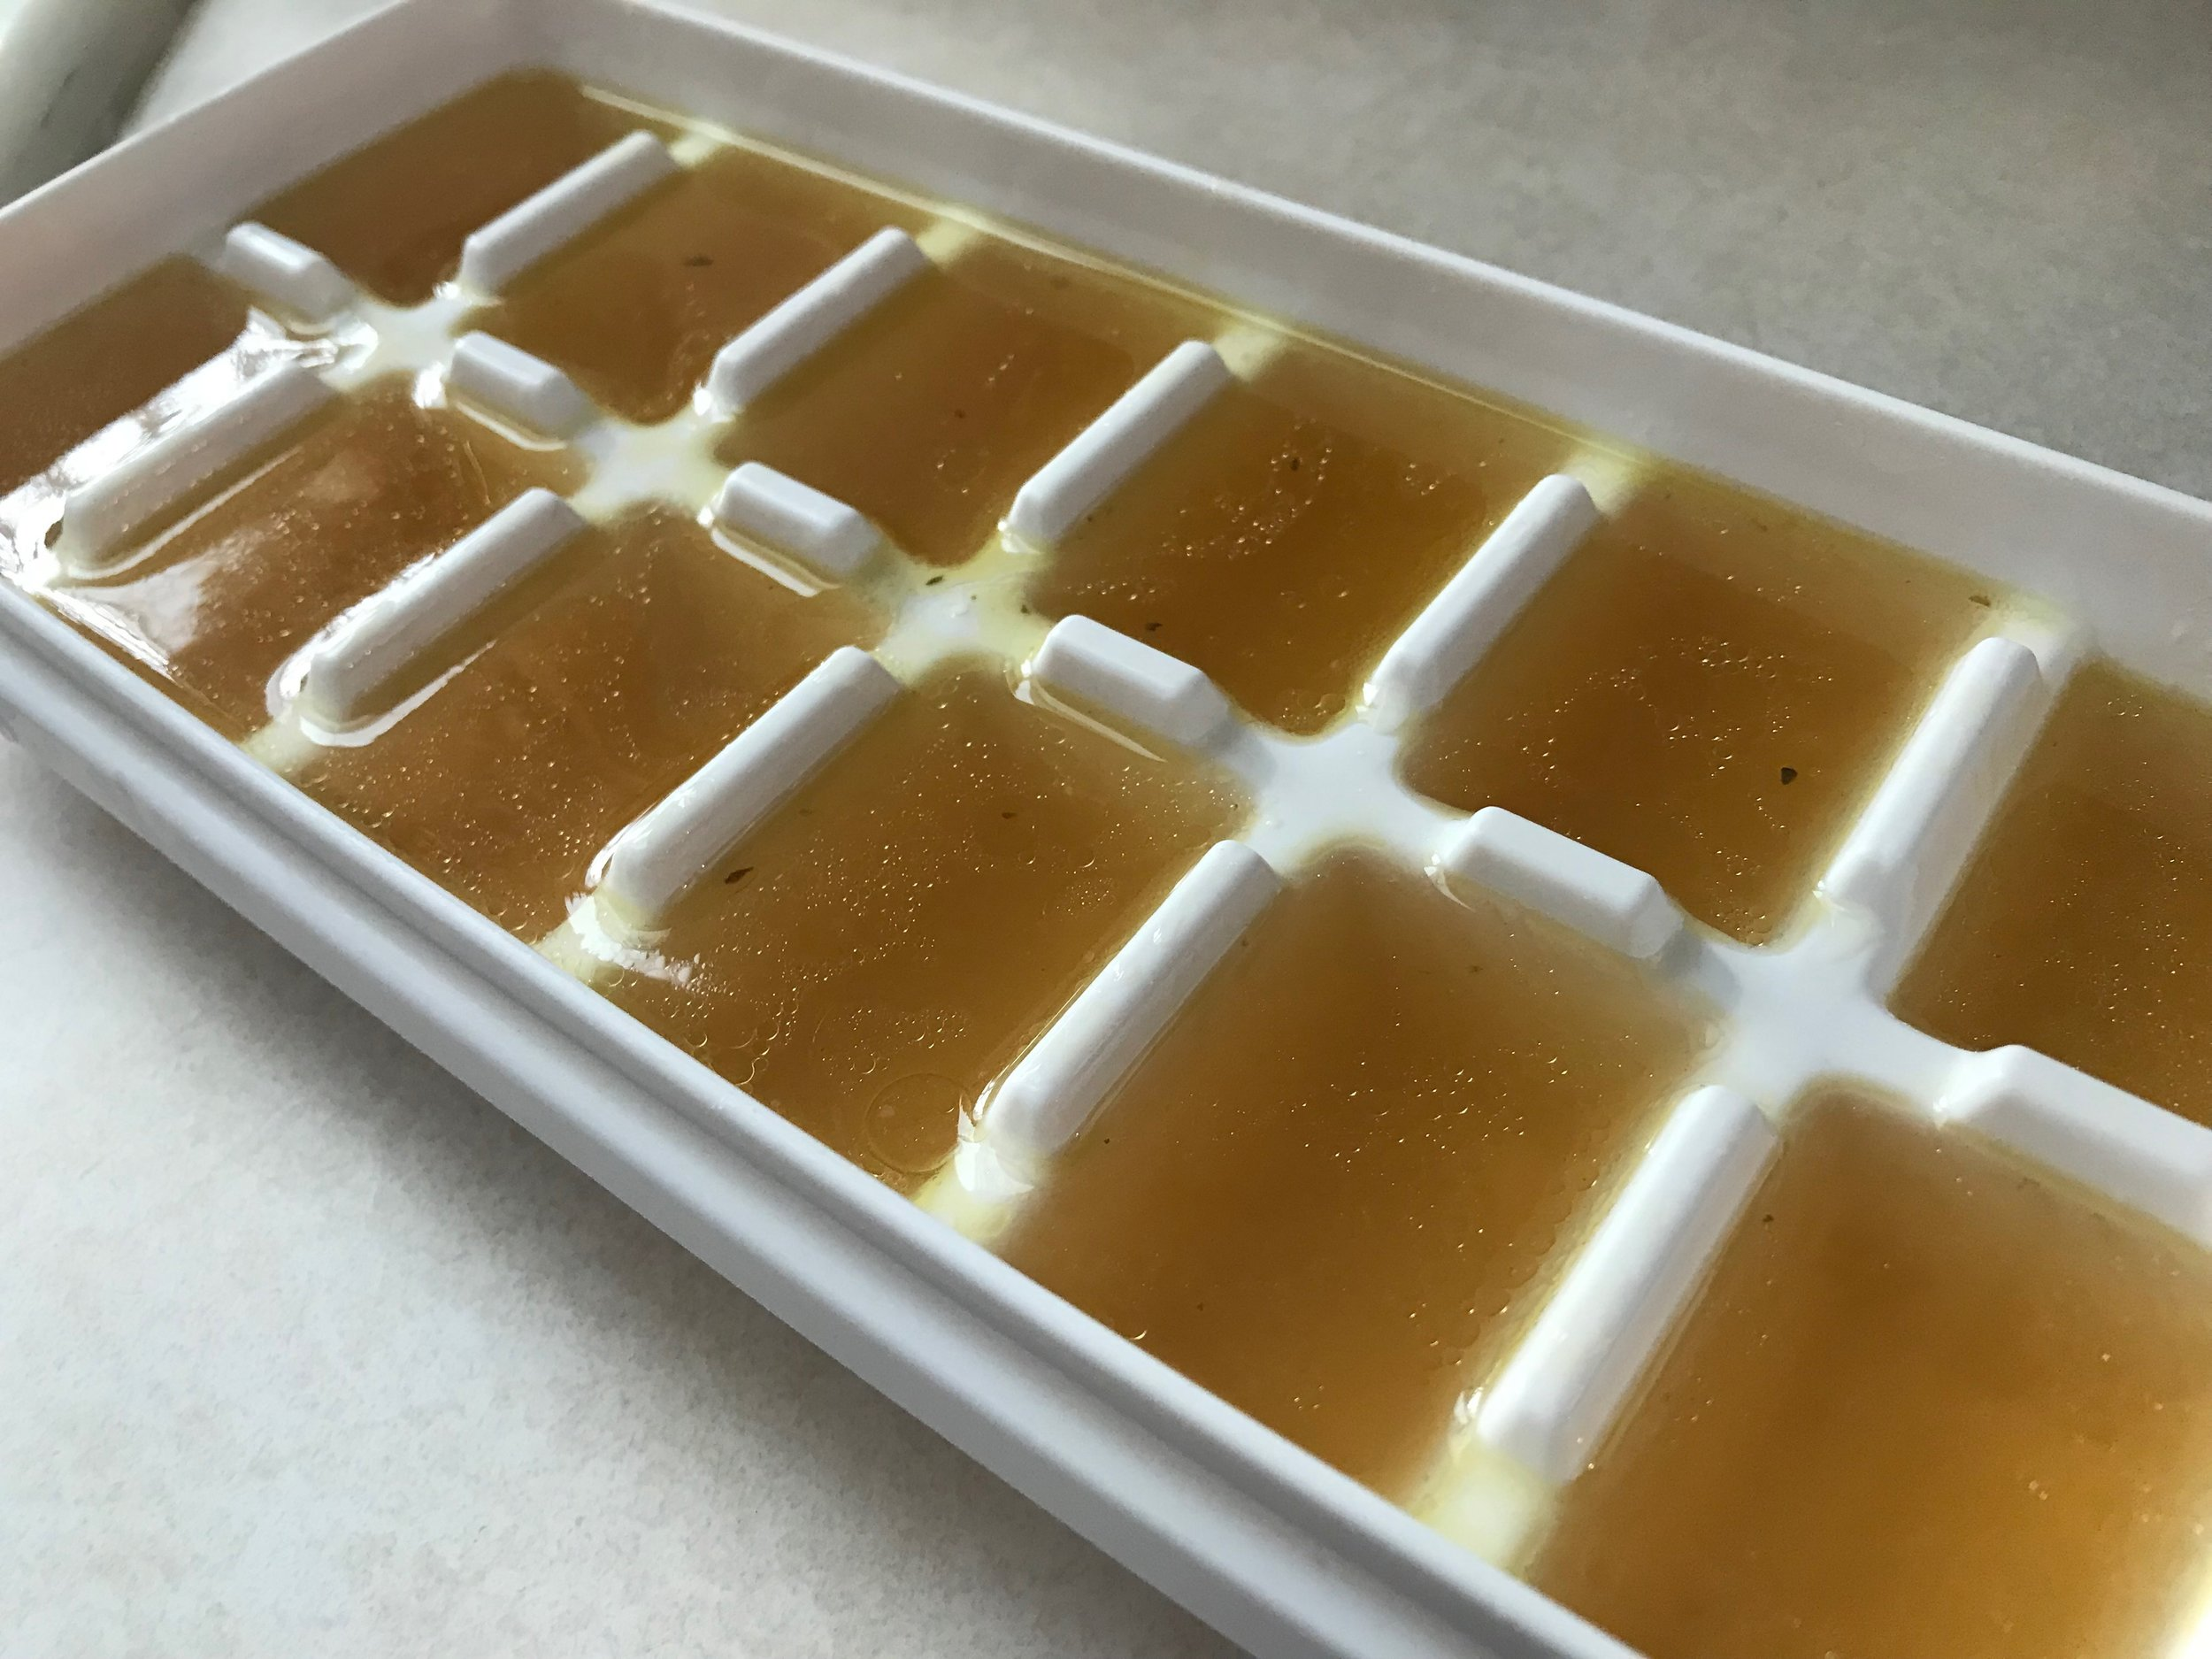 Freezes great in ice cube trays -